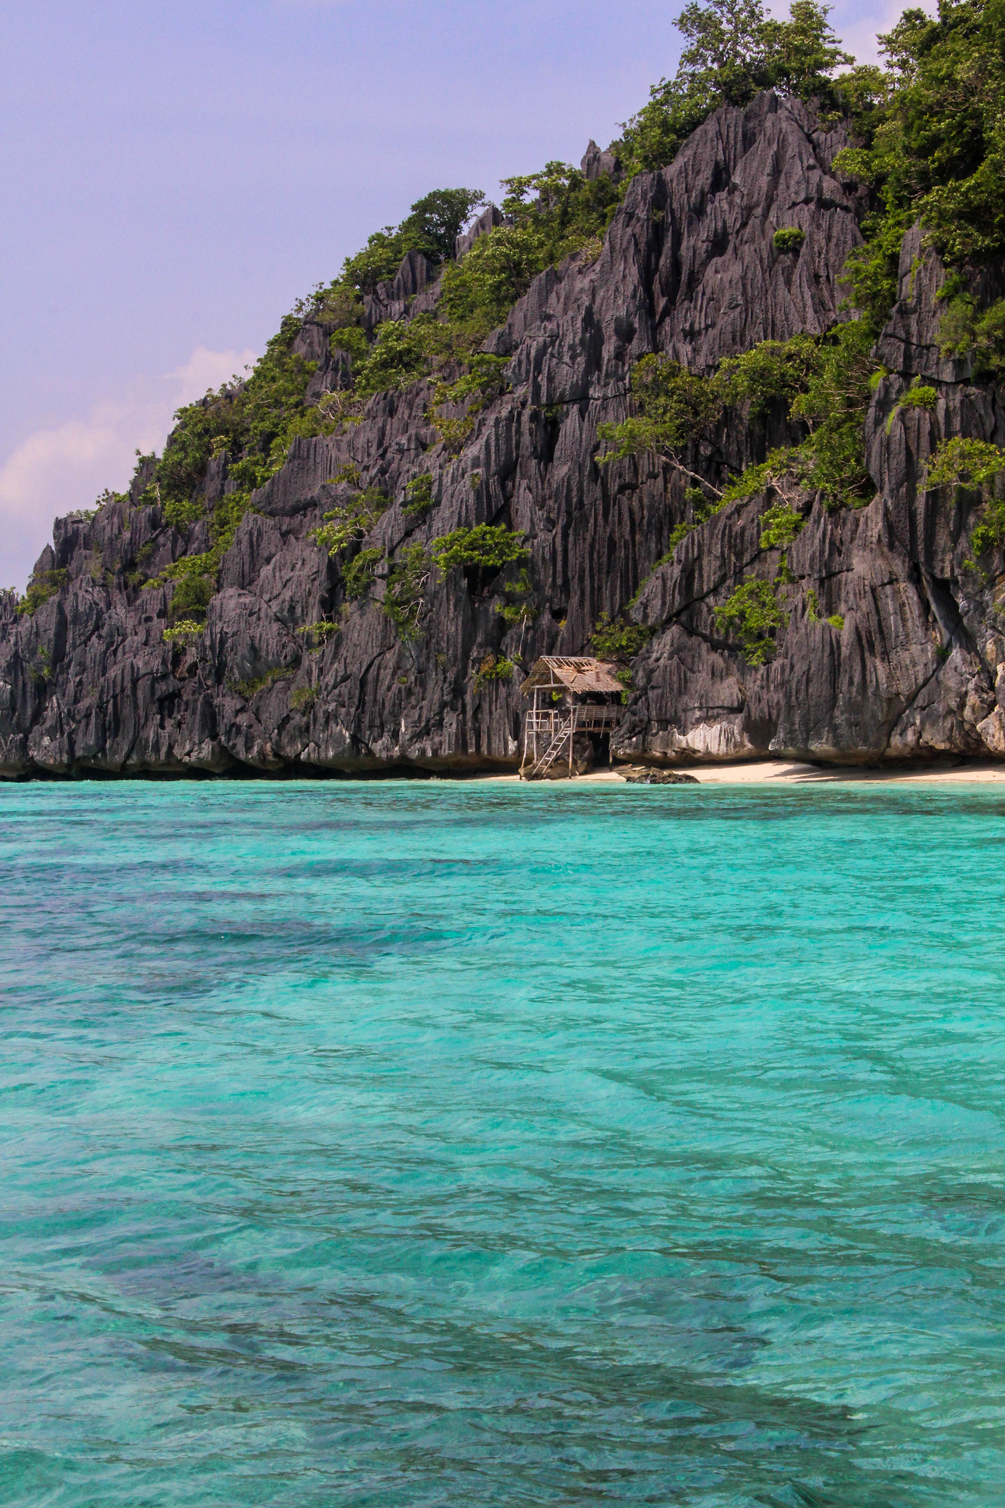 A beautiful scene in Coron, Philippines: a lone shack on the side of a limestone formation. | cat-elle.com